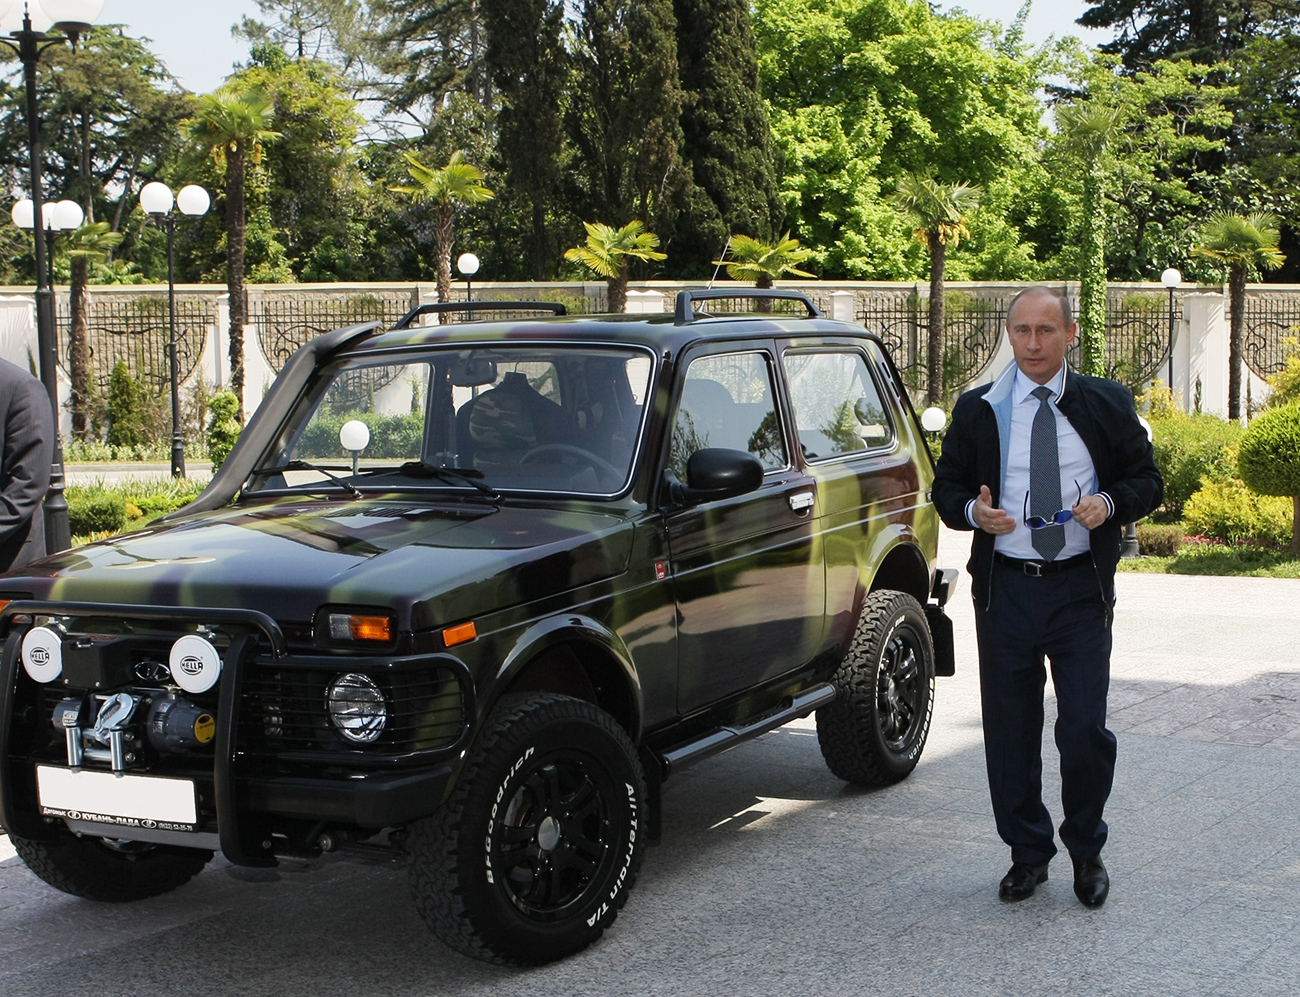 Vladimir Putin, Russian Prime Minister at the time of the photo, in the state residence Riviera 6 in Sochi. There he showed journalists his Niva off-roadster, the car Putin, now serving as Russia's President, still owns.